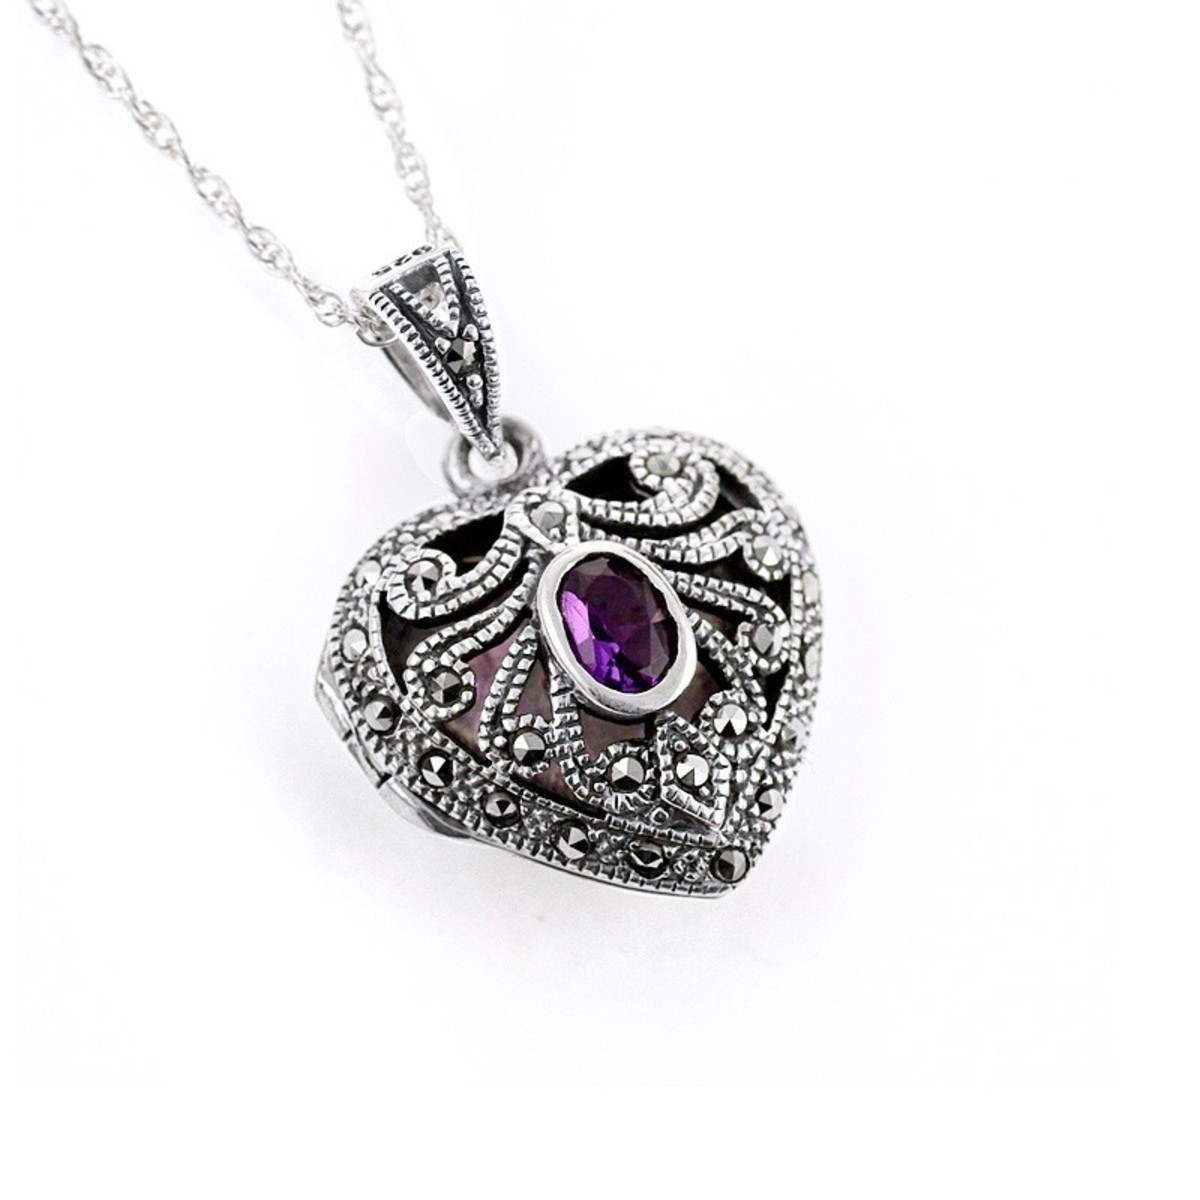 Exquisite Heart Shaped pendant with purple stone